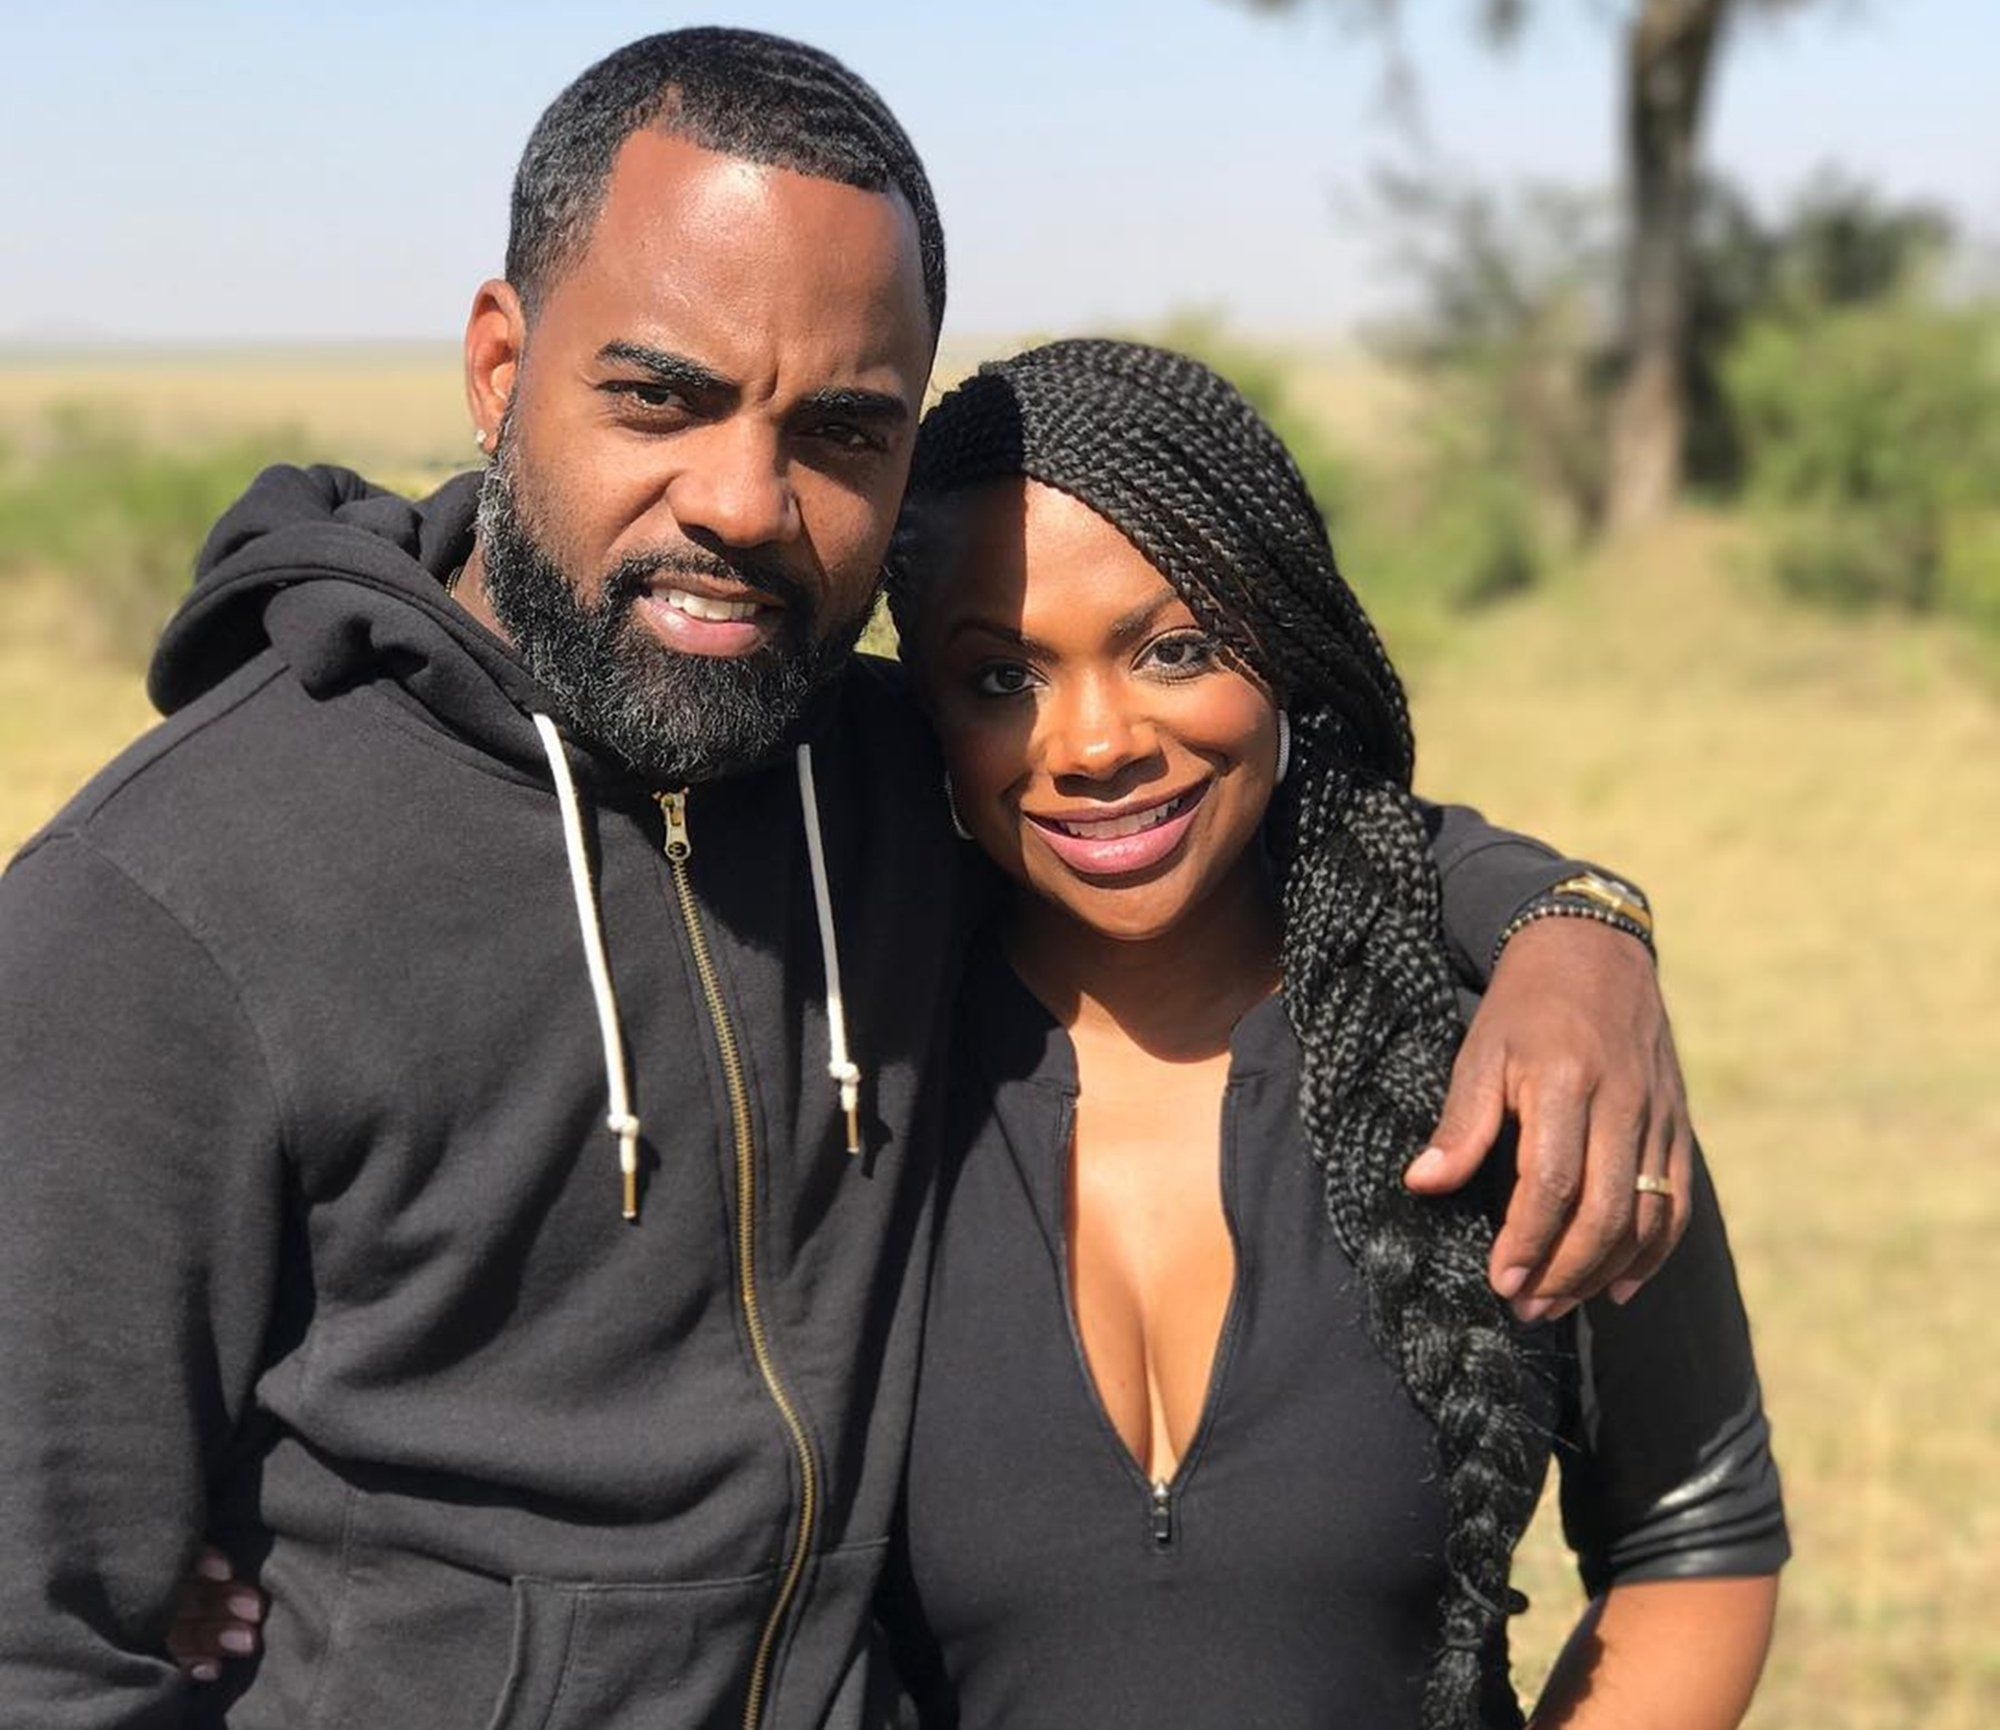 Kandi Burruss And Todd Tucker Share Some Financial Advice With Their Fans